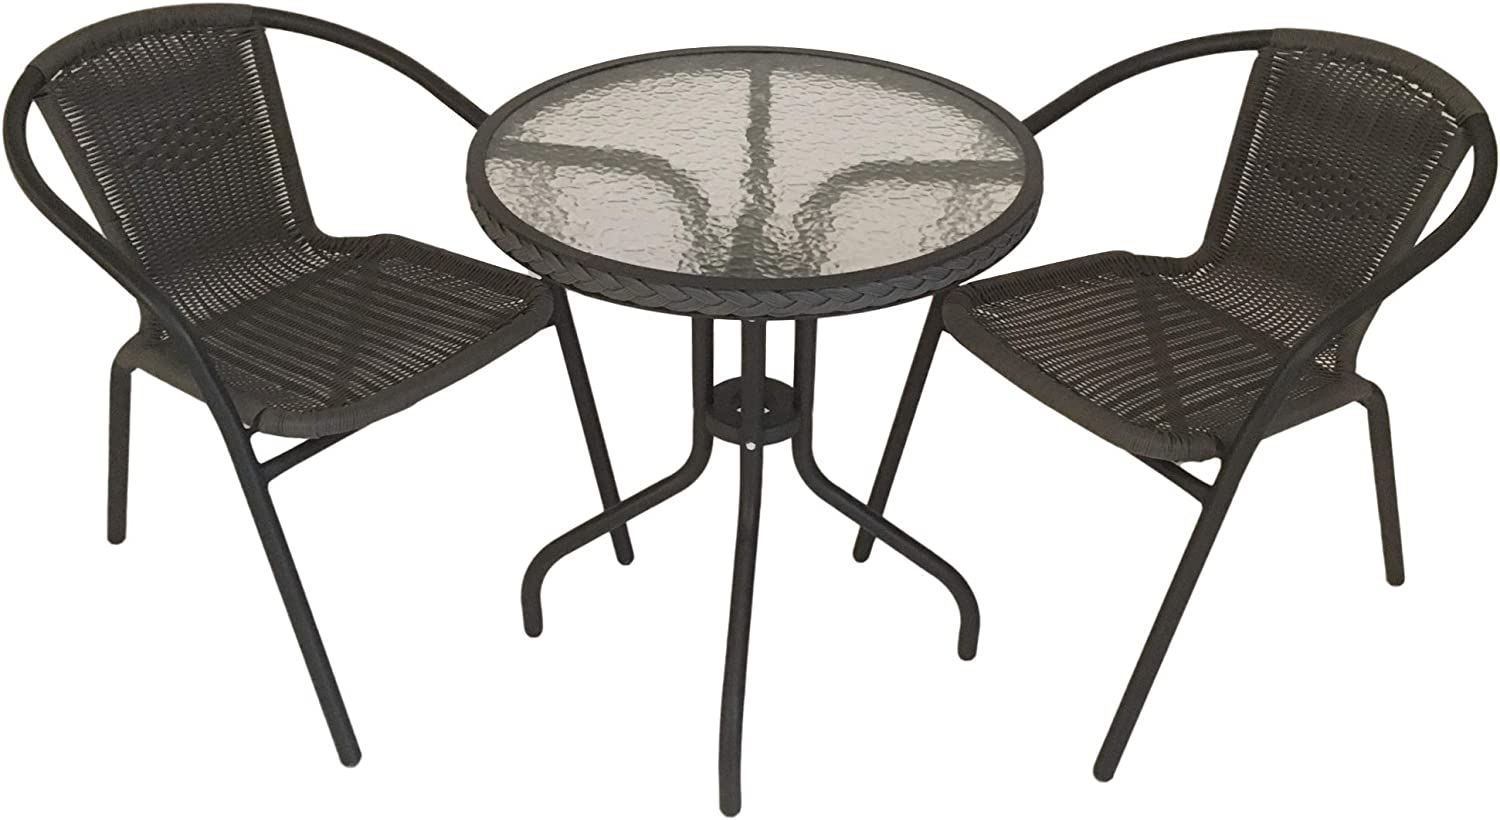 SALE Bistro Chair & Table Set with Aluminium Frame - Garden Furniture Cafe  - Round Patio Table & 10 Chairs - 10 cm